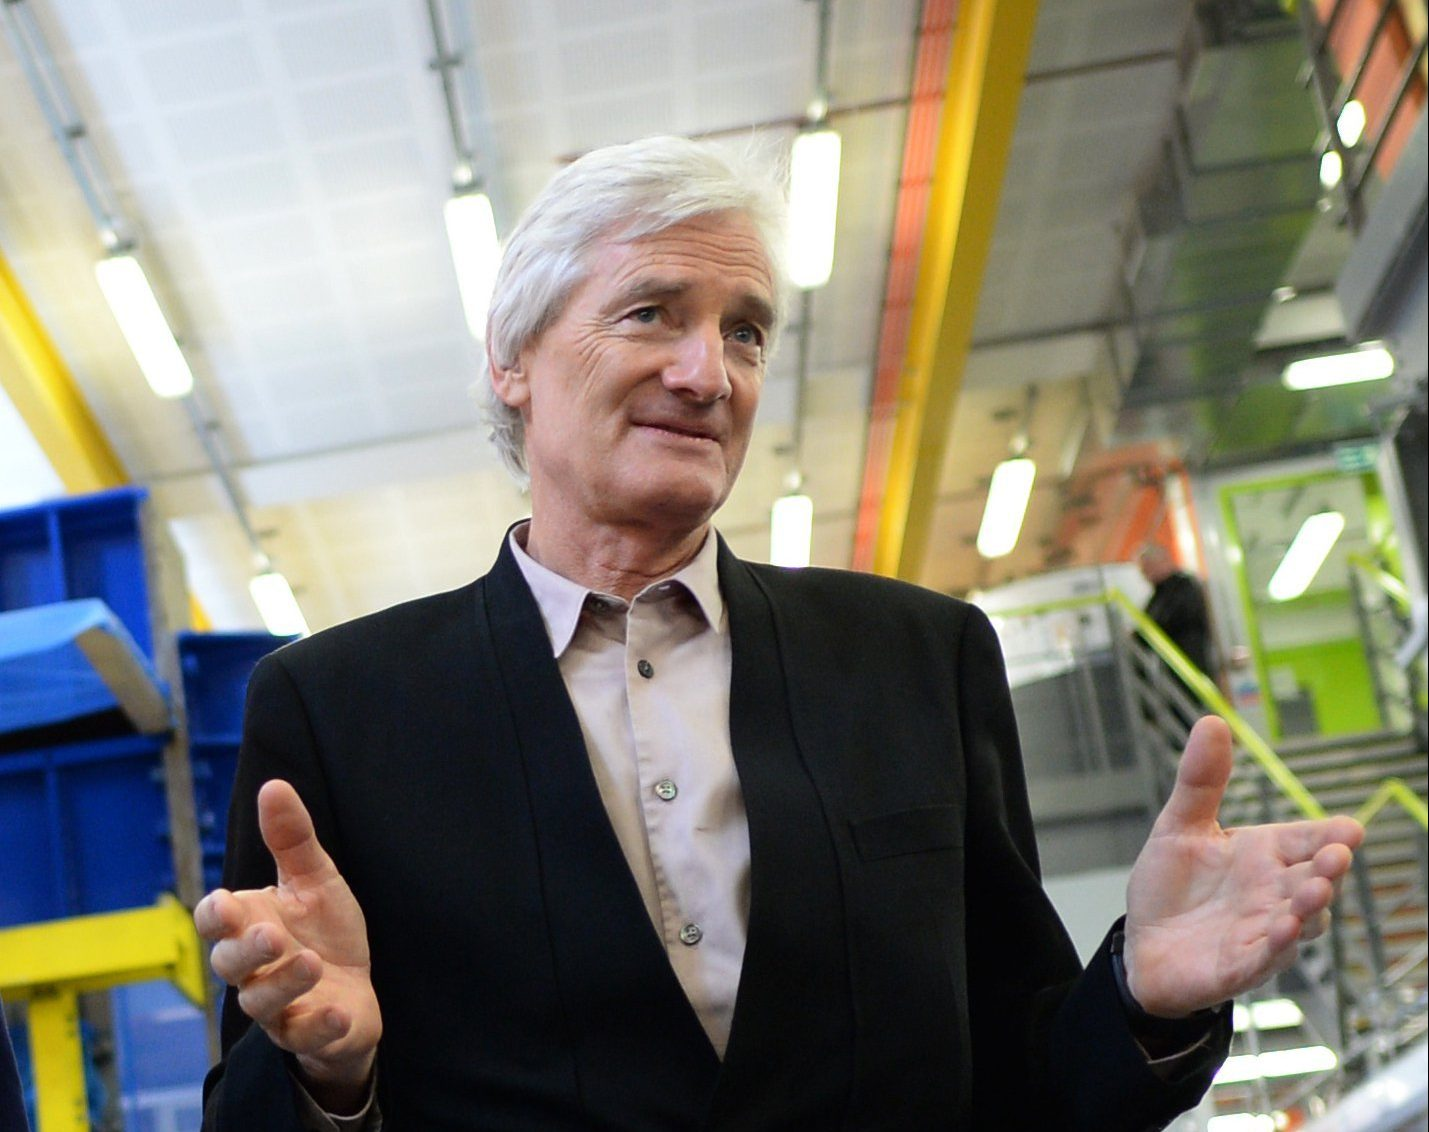 File photo dated 23/03/15 of Sir James Dyson, who is to relocate the Dyson head office from the UK to Singapore, meaning the company will be no longer be registered as British and will make Singapore its main tax base. PRESS ASSOCIATION Photo. Issue date: Tuesday January 22, 2019. See PA story CITY Dyson. Photo credit should read: Stefan Rousseau/PA Wire